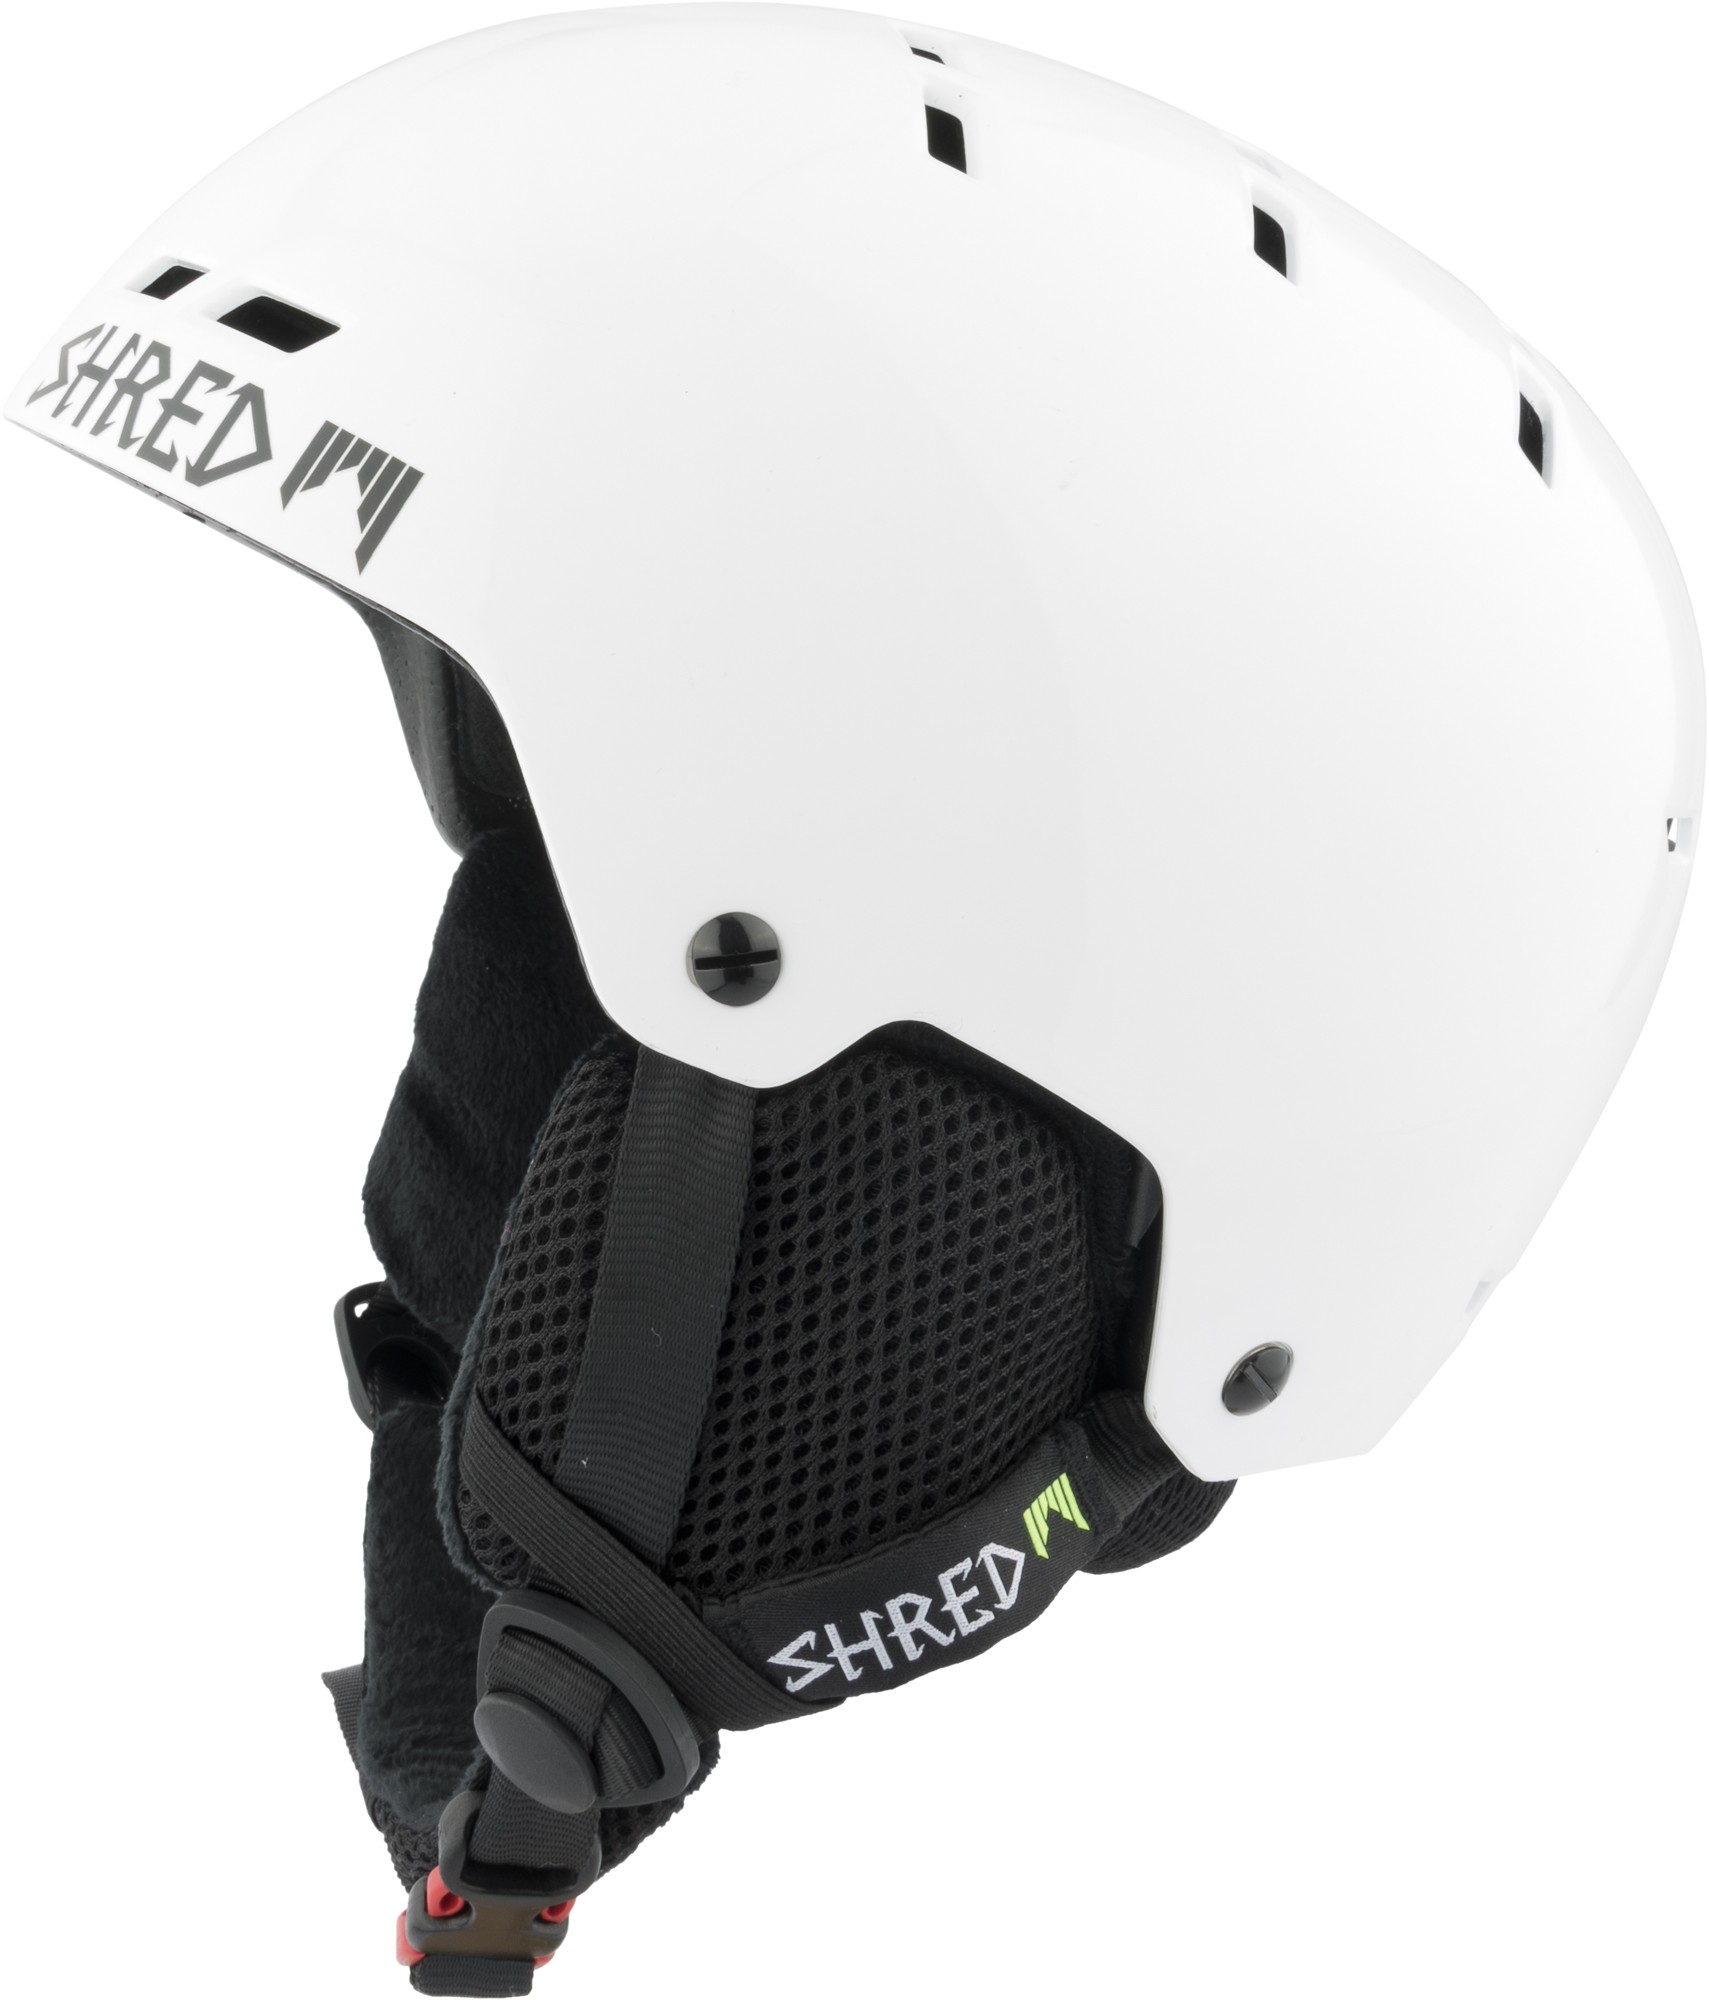 shred bumper warm whiteout